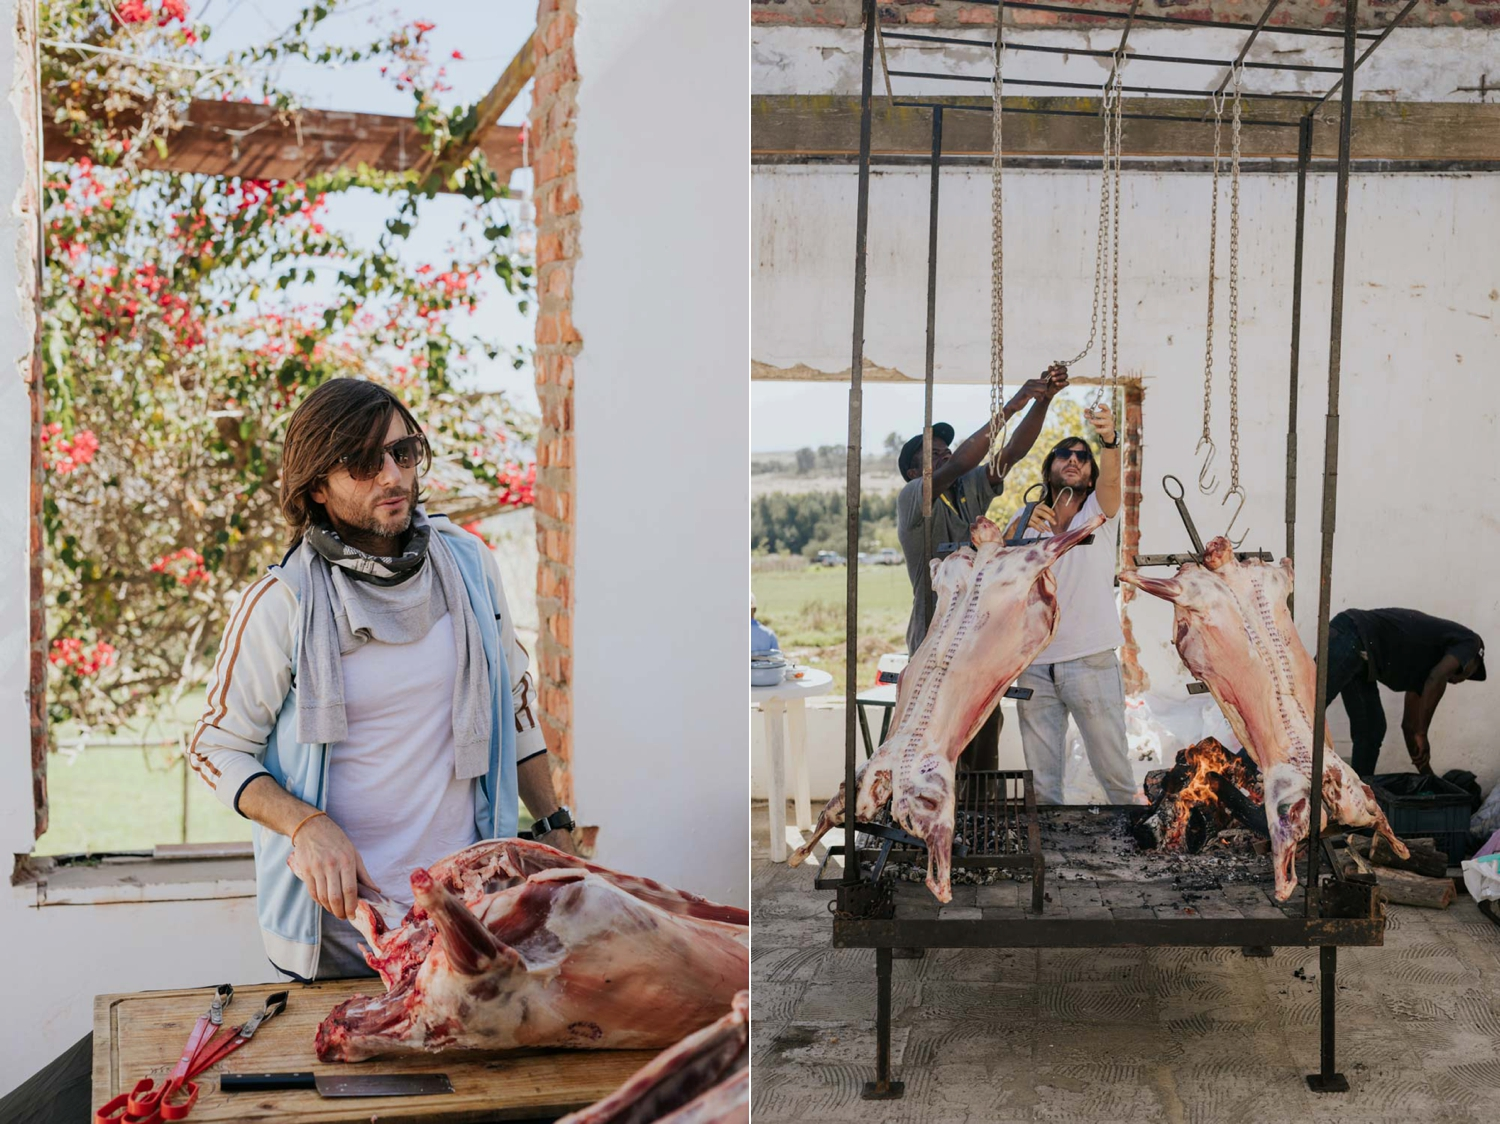 Different wedding food - a Argentina chef hanging up legs of lamb on an open fire like in Chef's Table